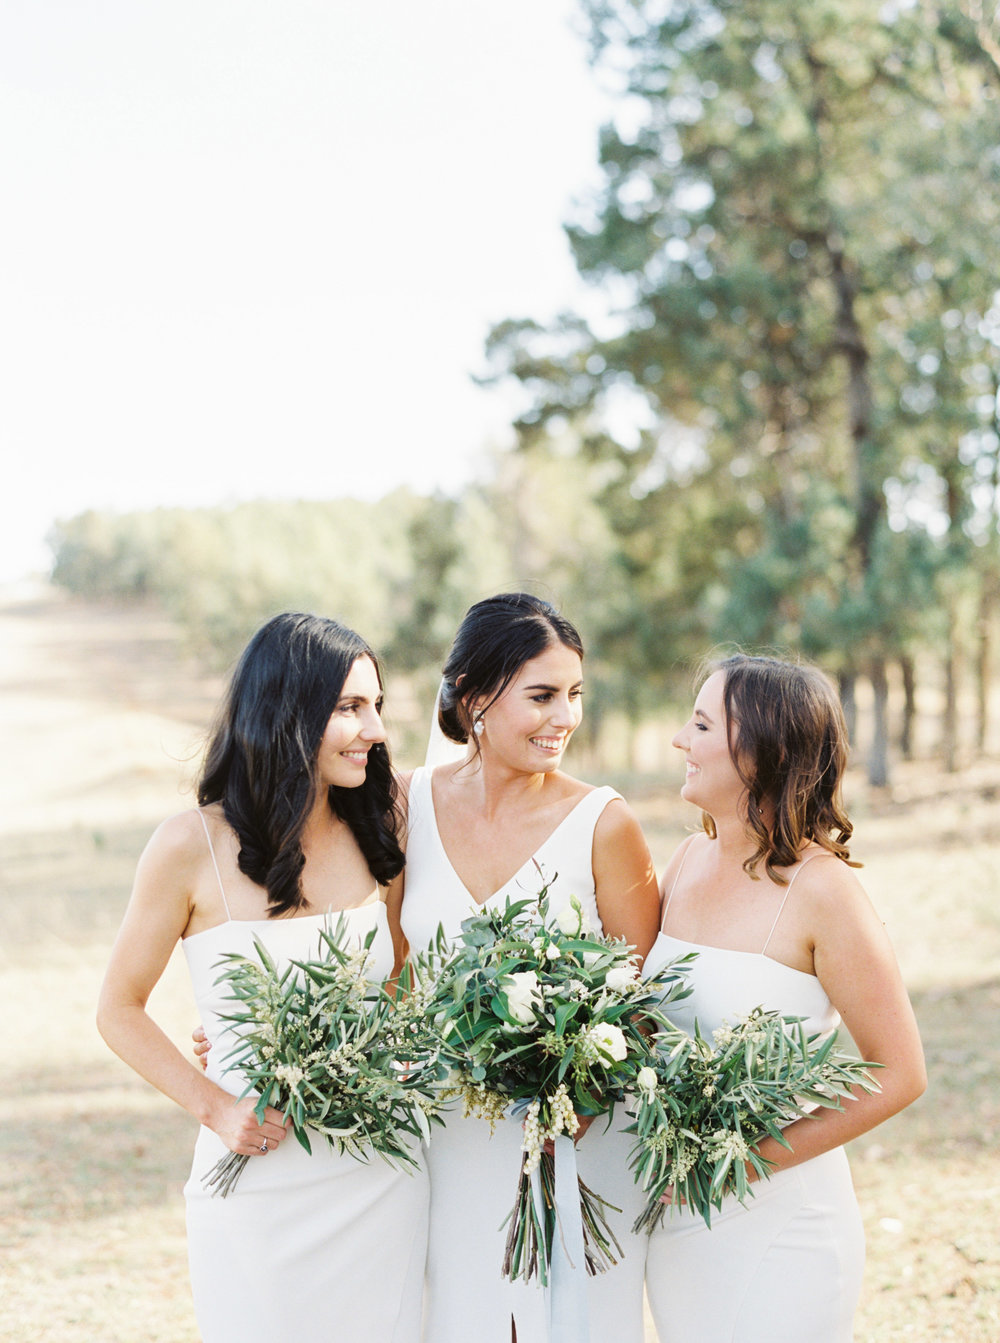 00044- Olive Tree Mediterranean Wedding in Mudgee NSW Australia Fine Art Film Wedding Lifestyle Photographer Sheri McMahon_.jpg